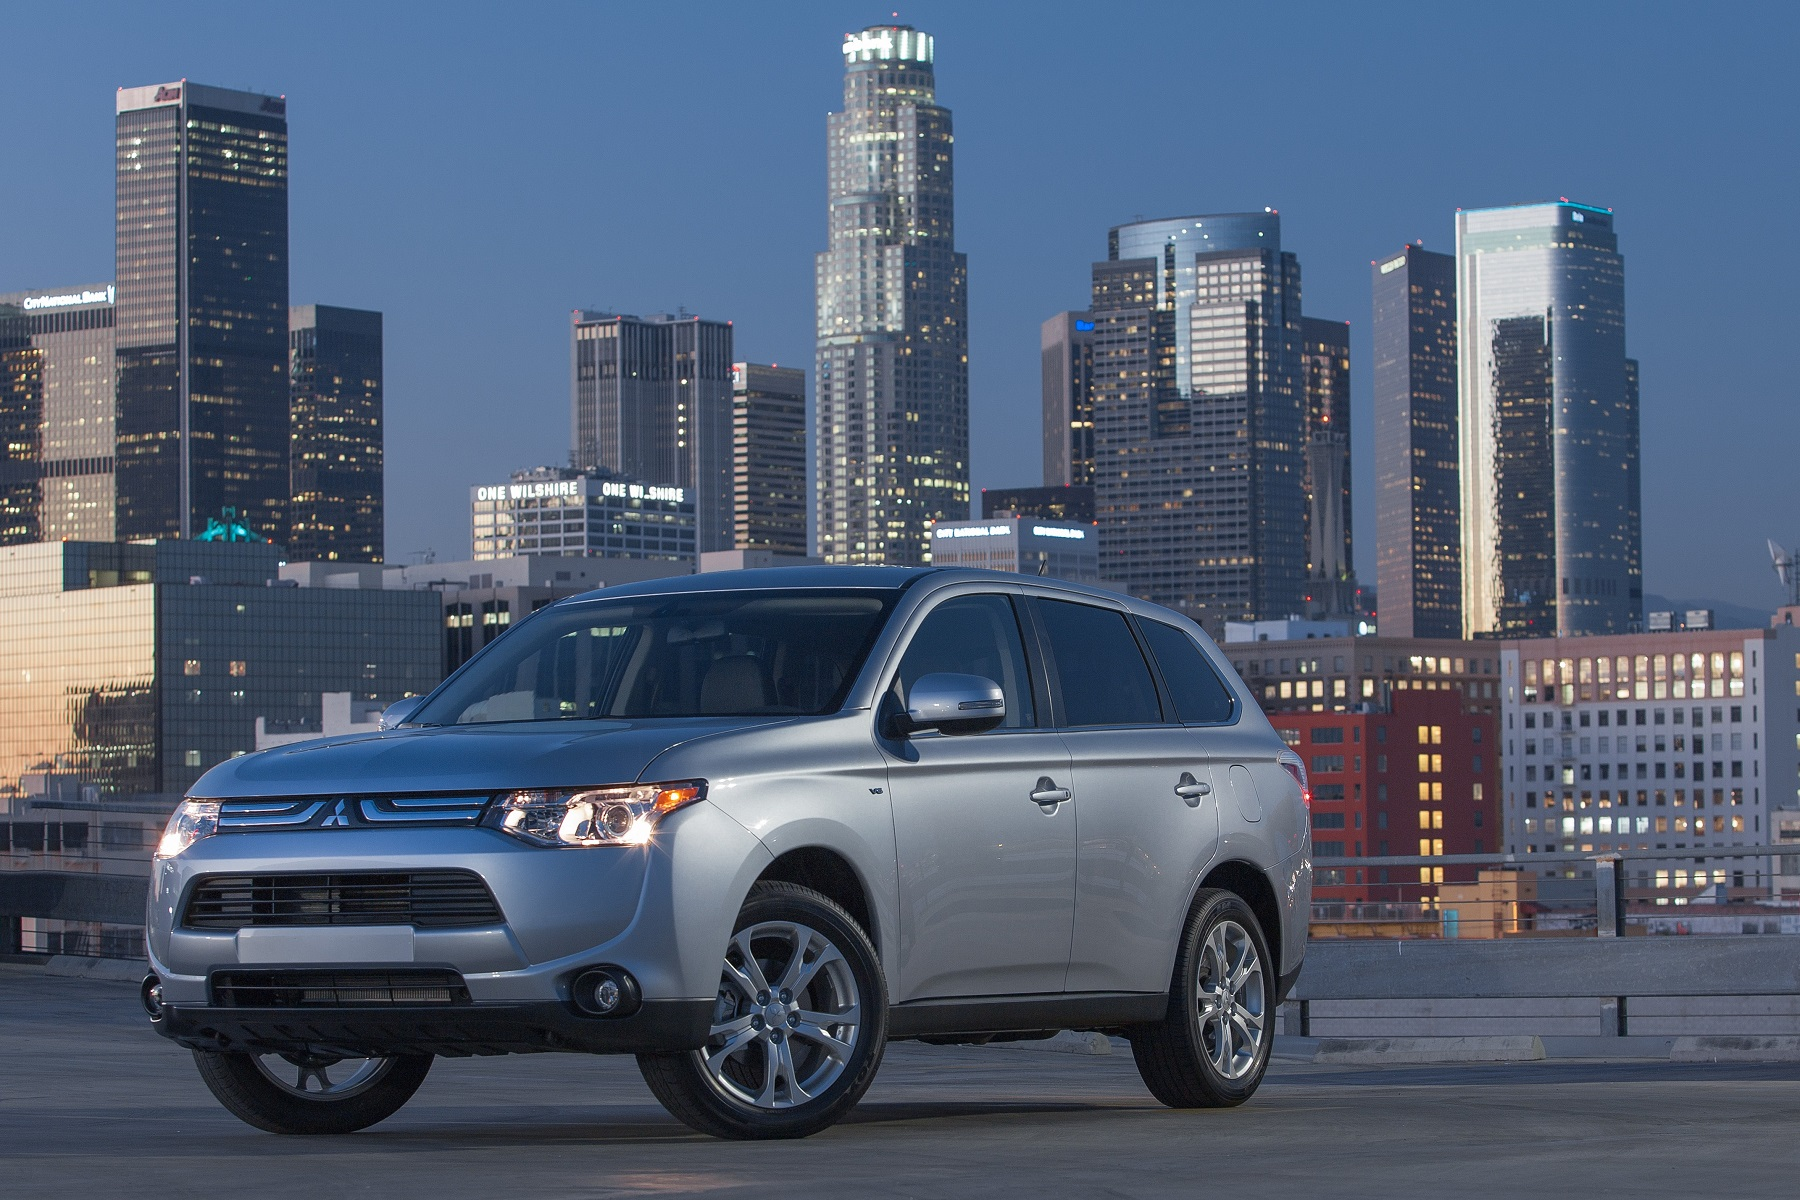 Manufacturer photo: With new styling inside and out, a new engine equipped with next-generation MIVEC variable valve-timing, technologically-advanced safety features and a lightweight, aerodynamically-enhanced body, the new 2014 Mitsubishi Outlander is sure to be one of the most fuel-efficient compact CUVs with standard 7-passenger seating available to automotive consumers in North America